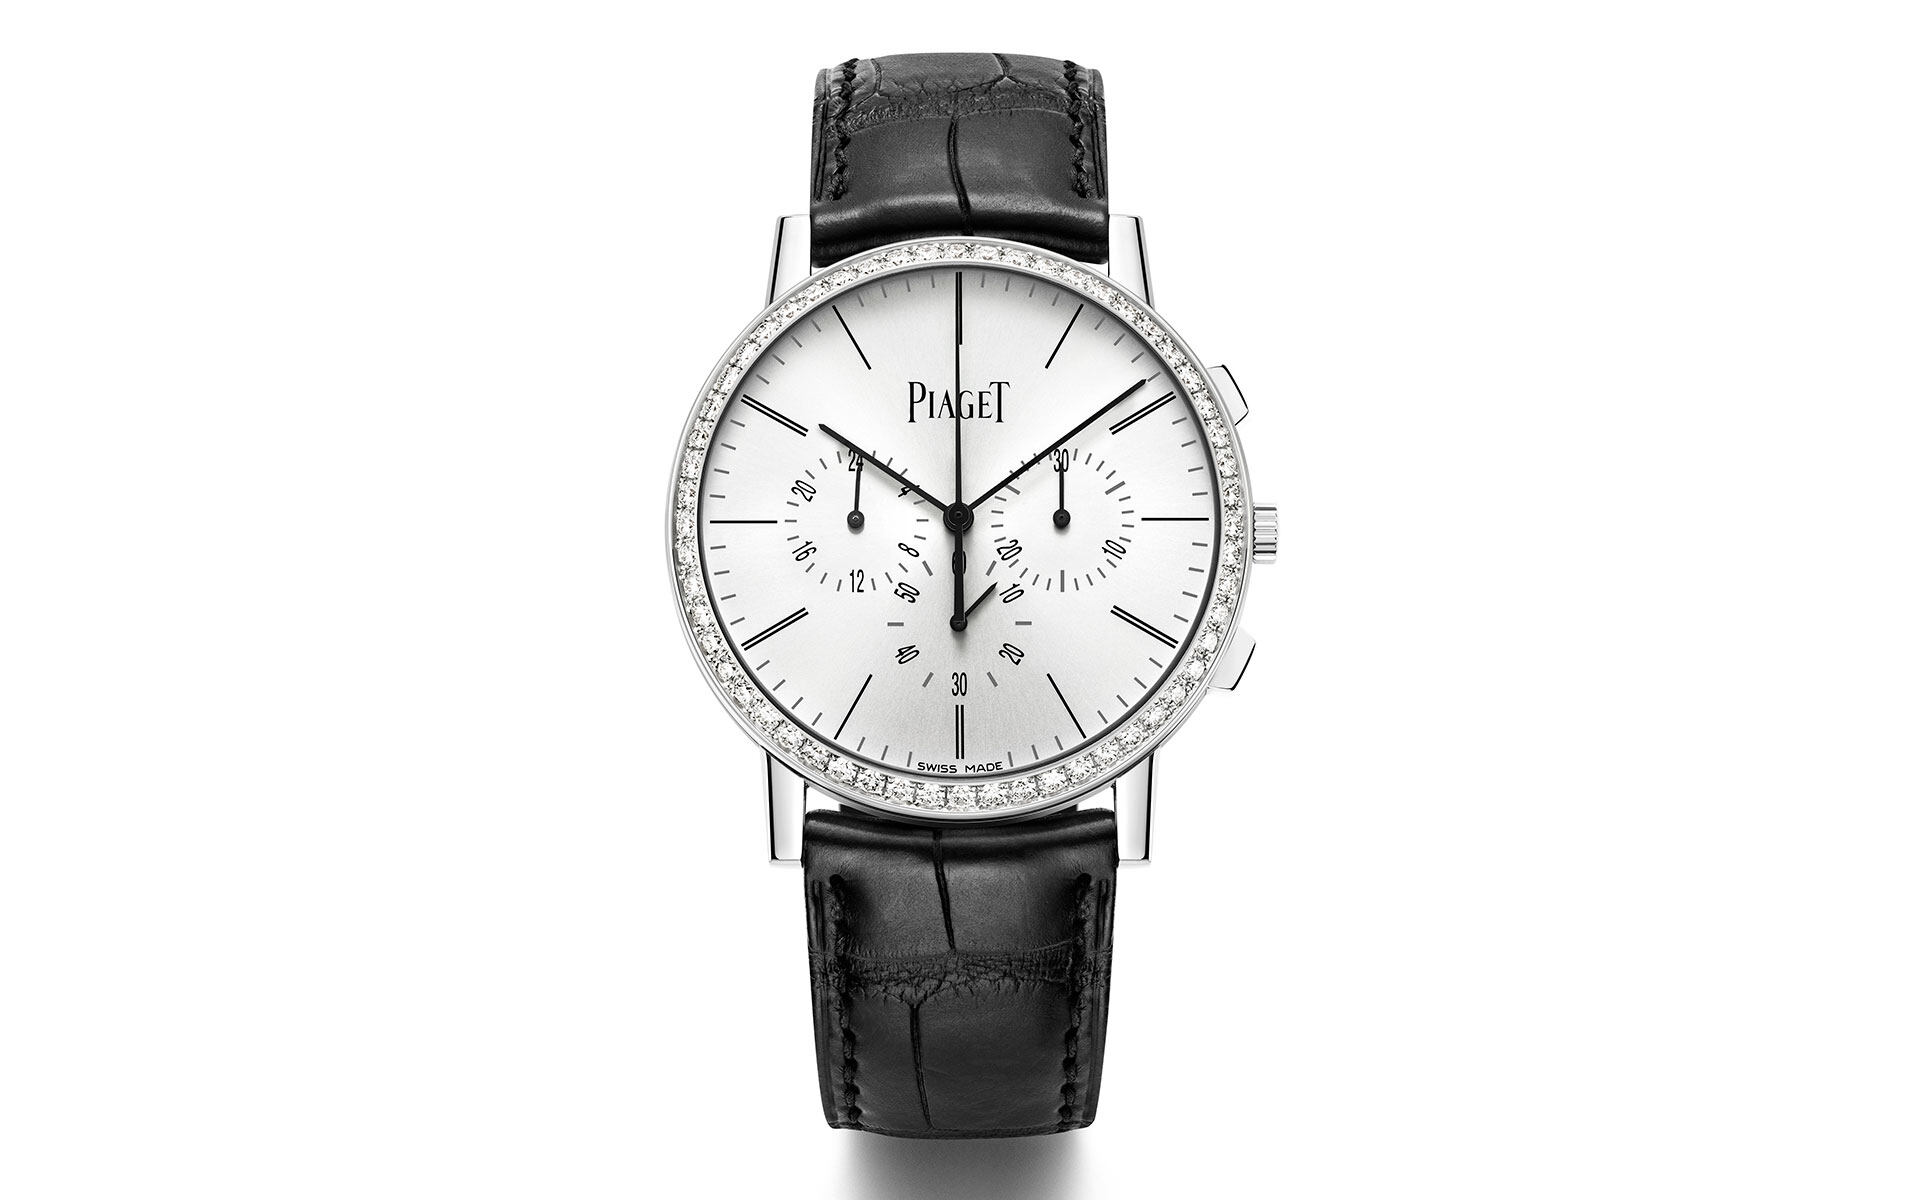 SIHH 2015 Report:Piaget